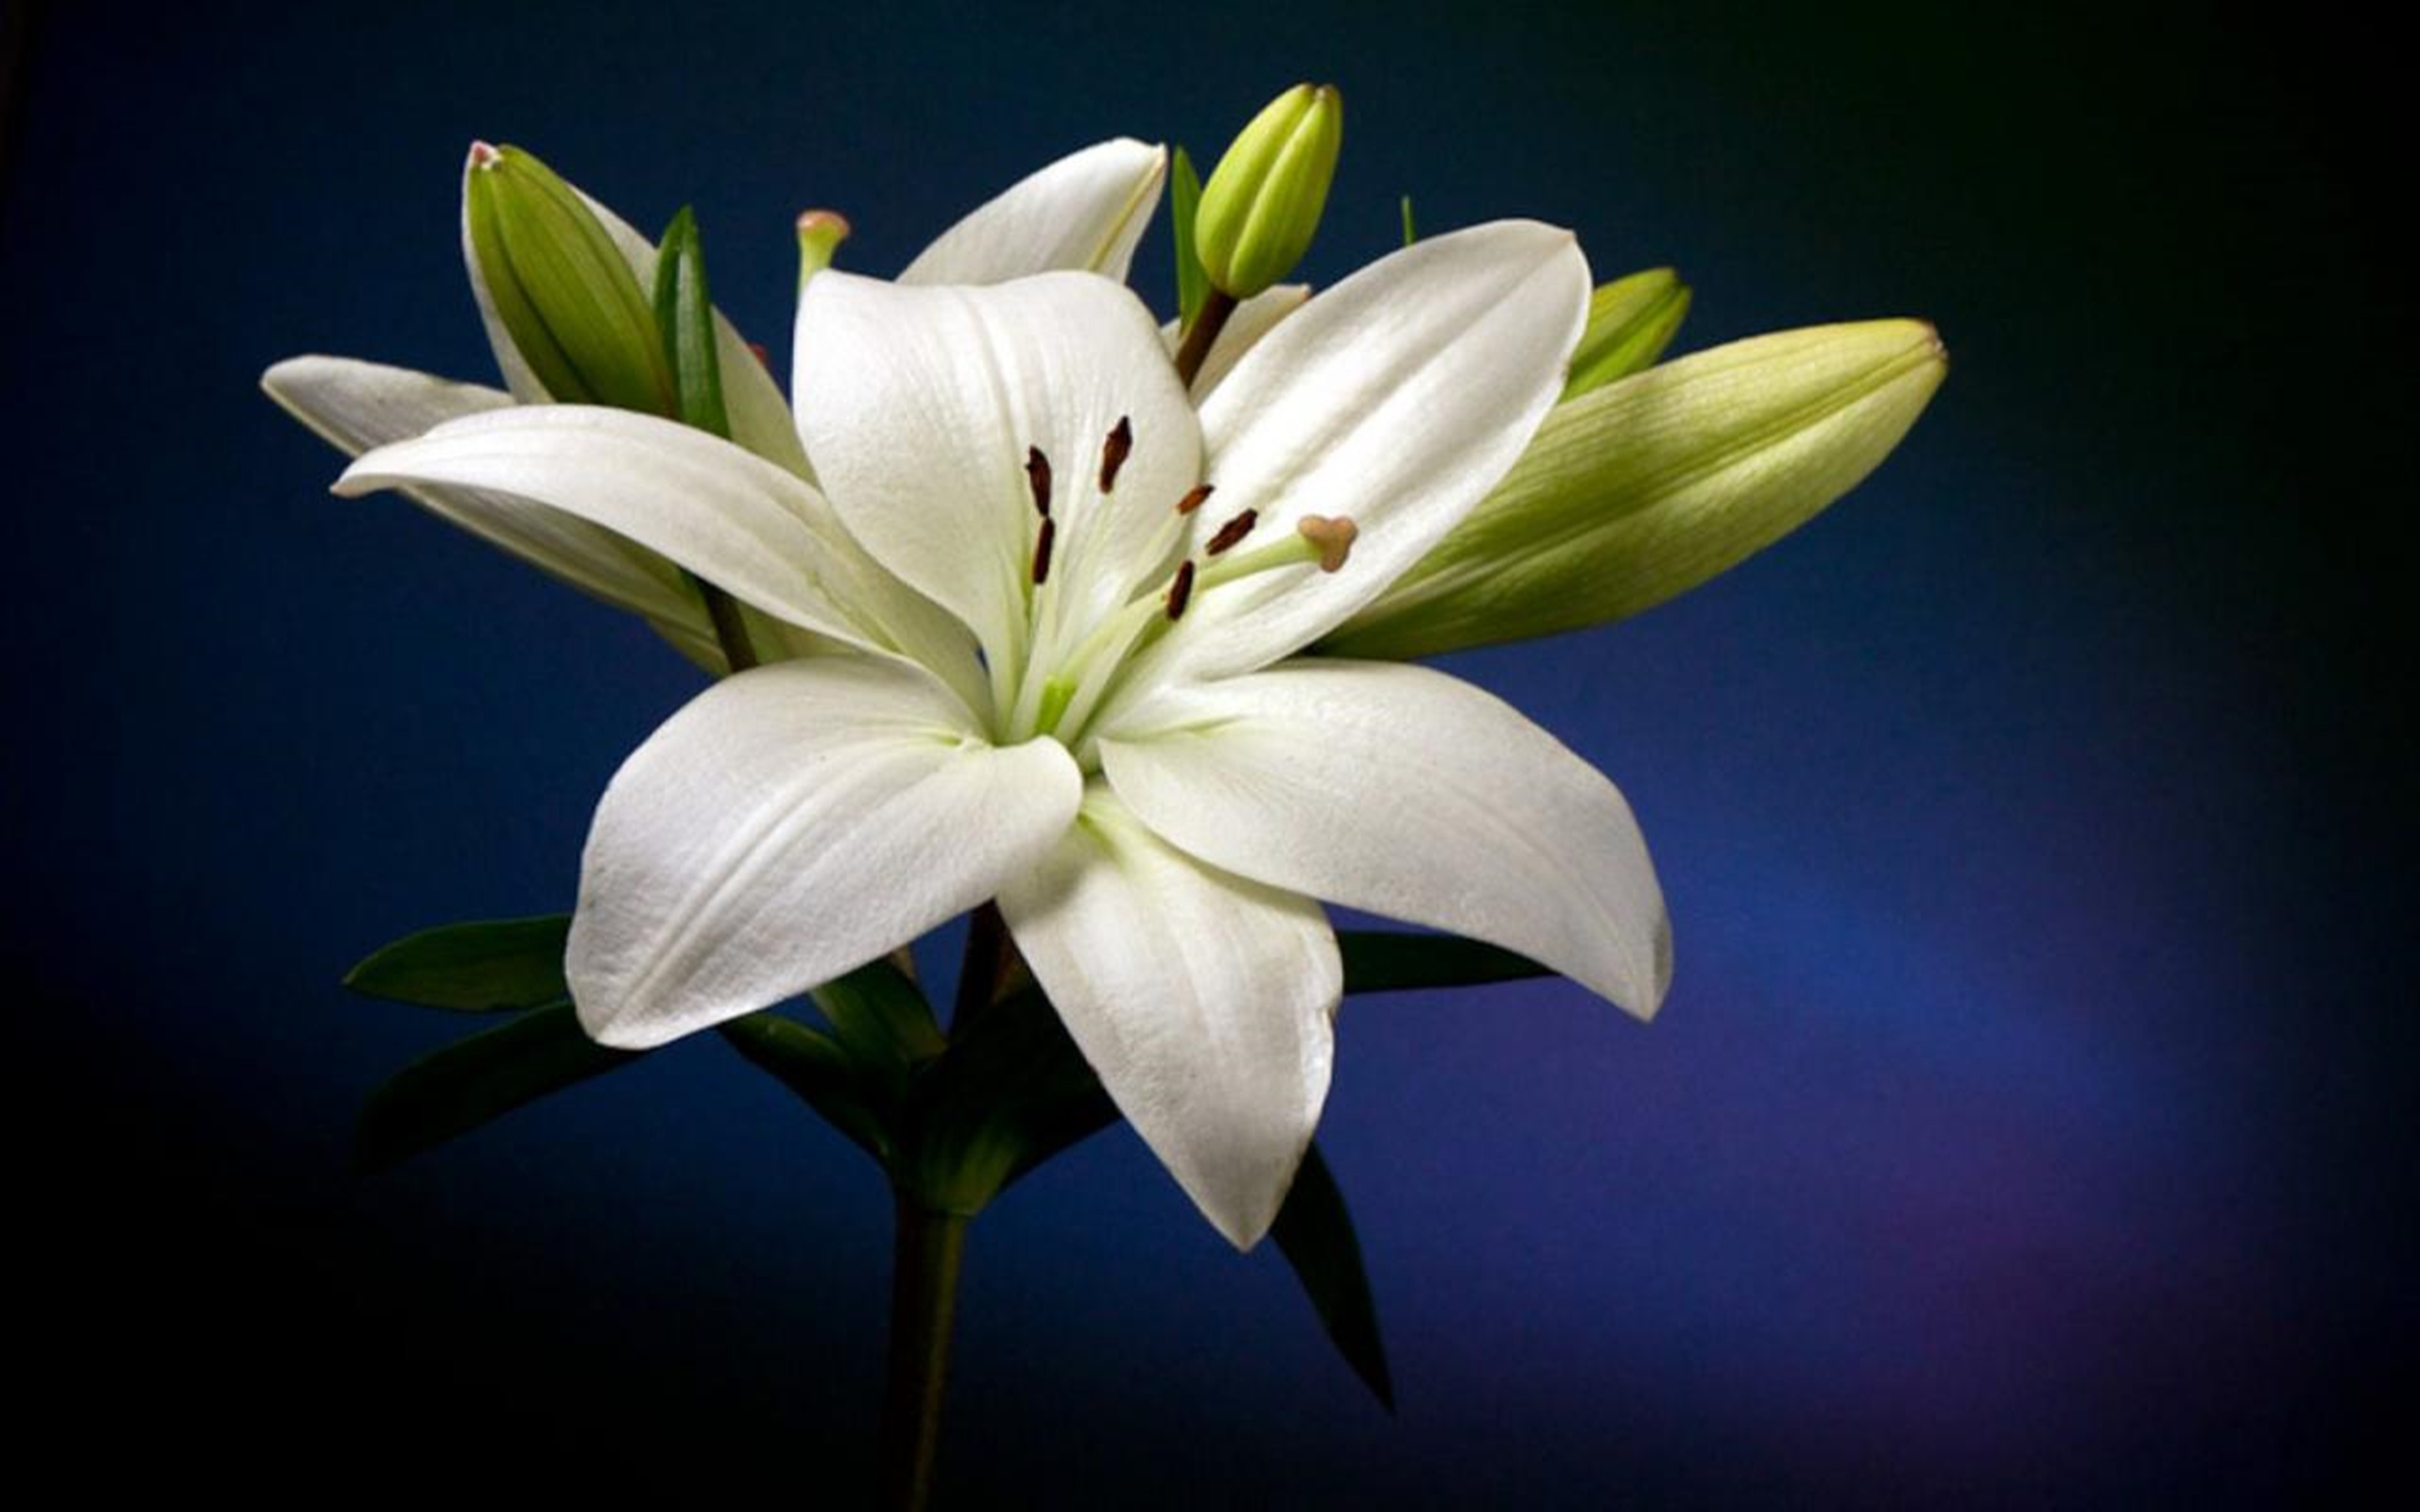 Lily Backgrounds, Compatible - PC, Mobile, Gadgets  2560x1600 px